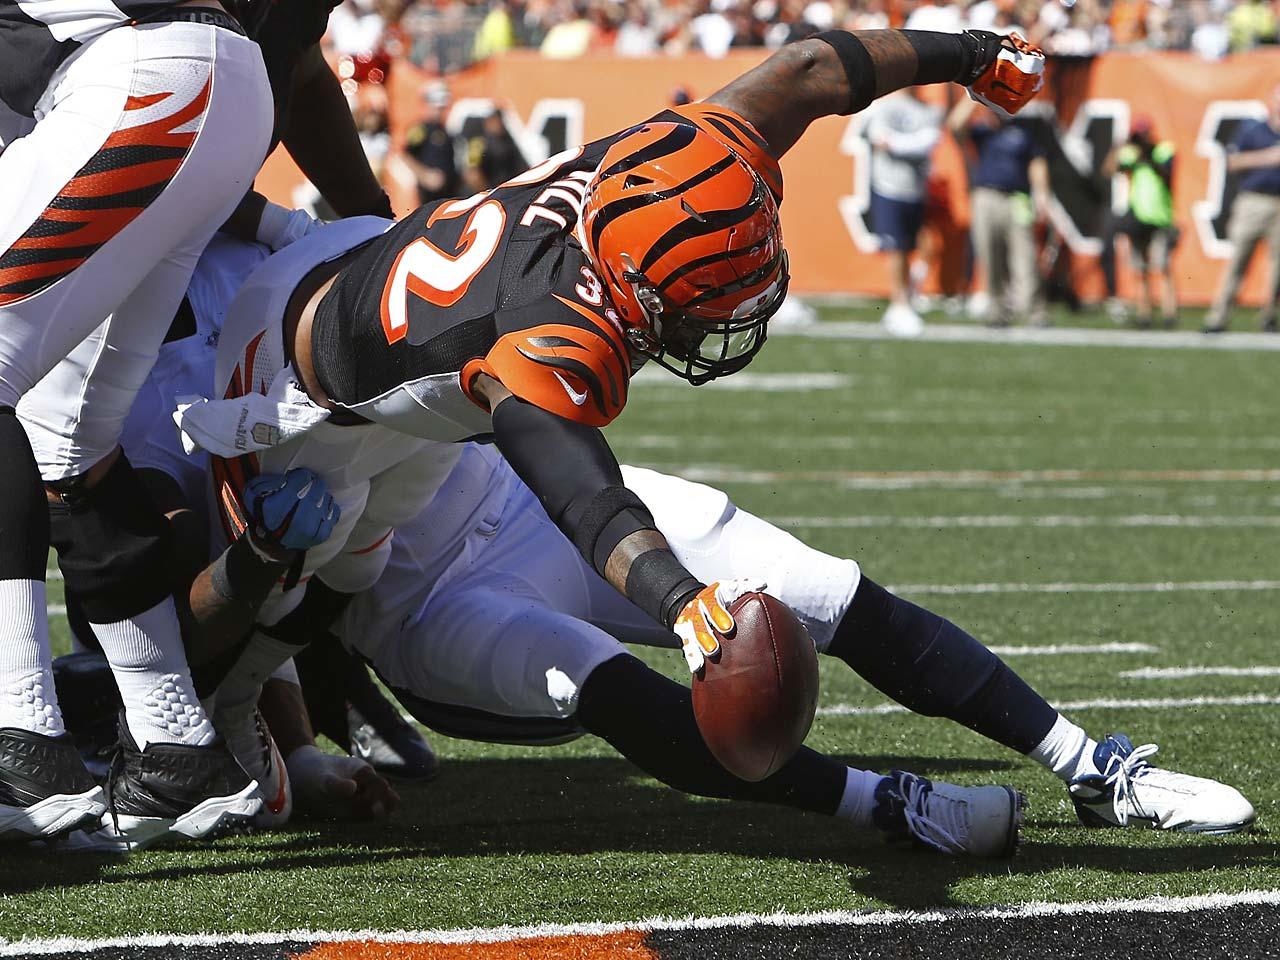 Cincinnati Bengals running back Jeremy Hill dives into the end zone for a four-yard touchdown.